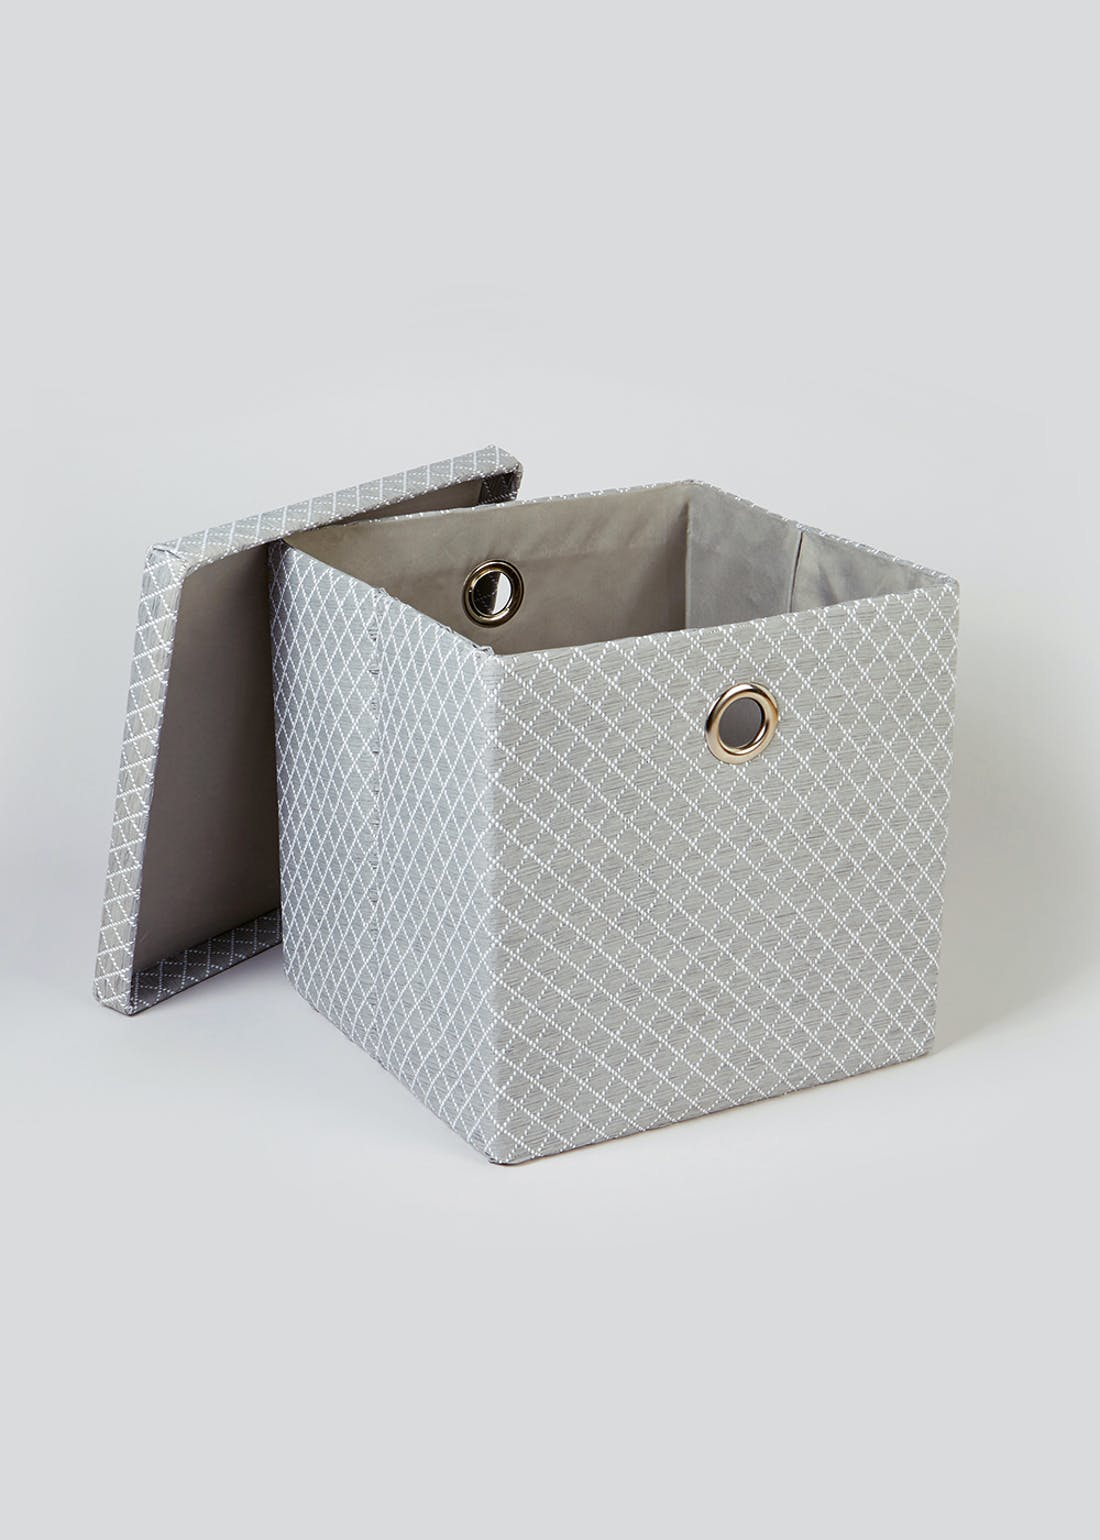 Quilted Foldable Fabric Storage Box (32cm x 32cm x 32cm)